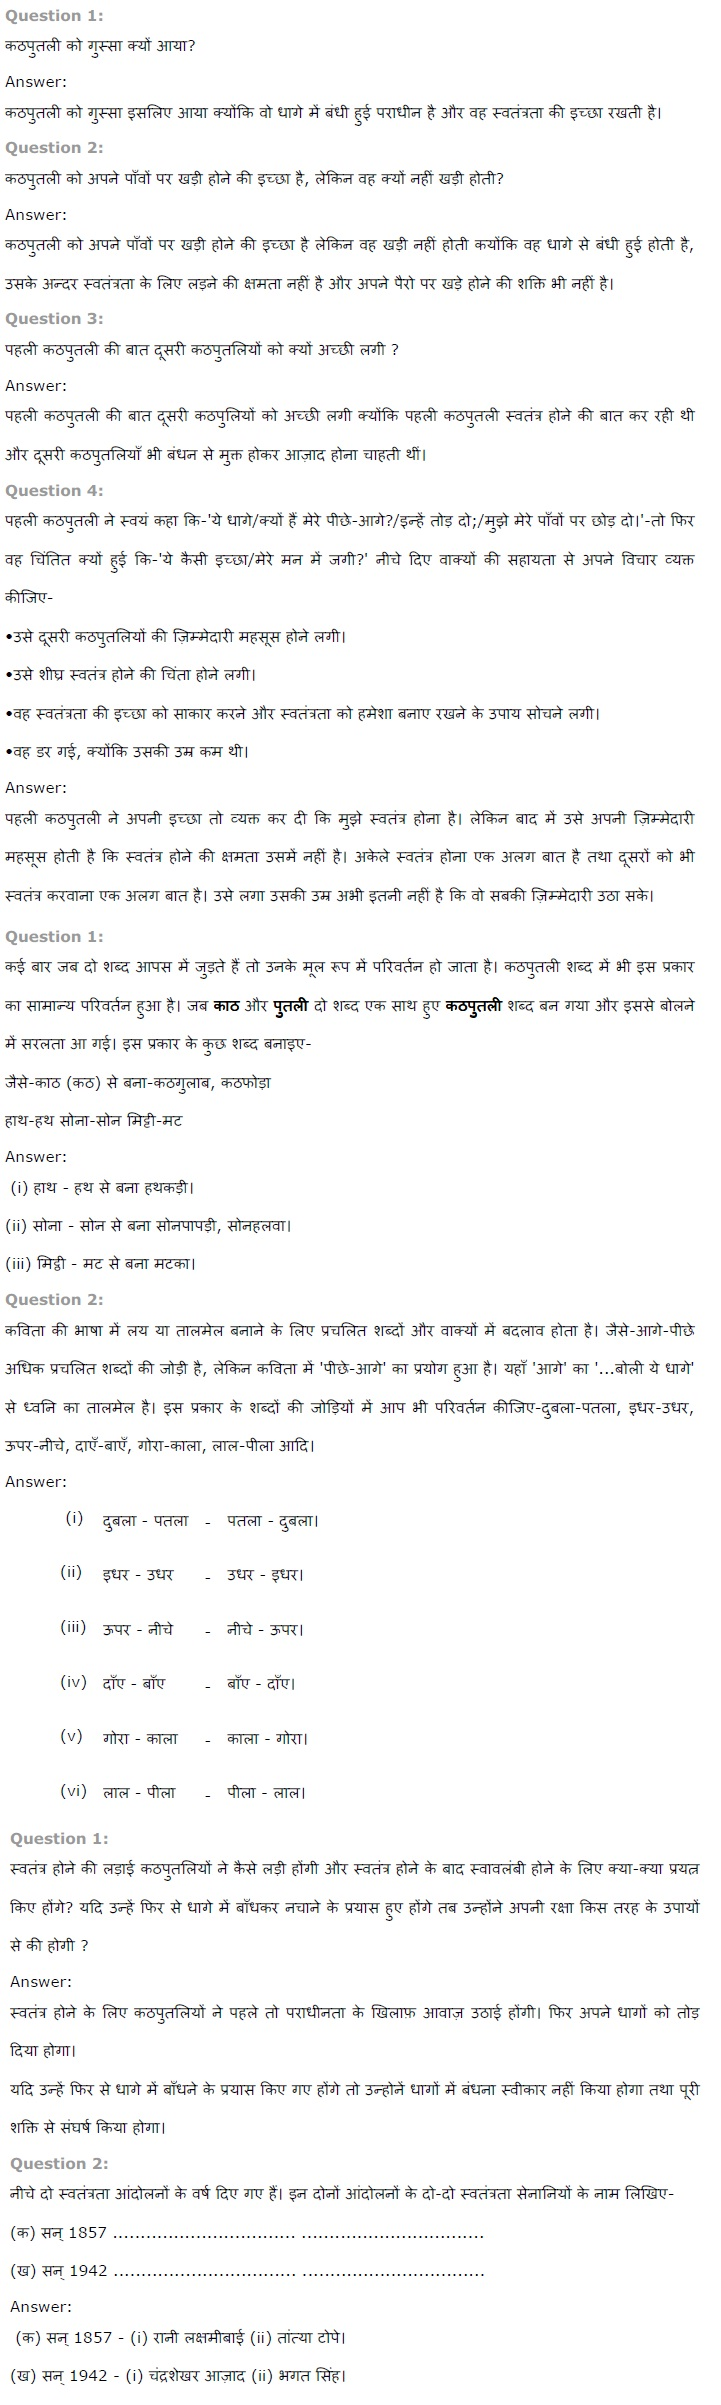 ncert solution of class 7th hindi